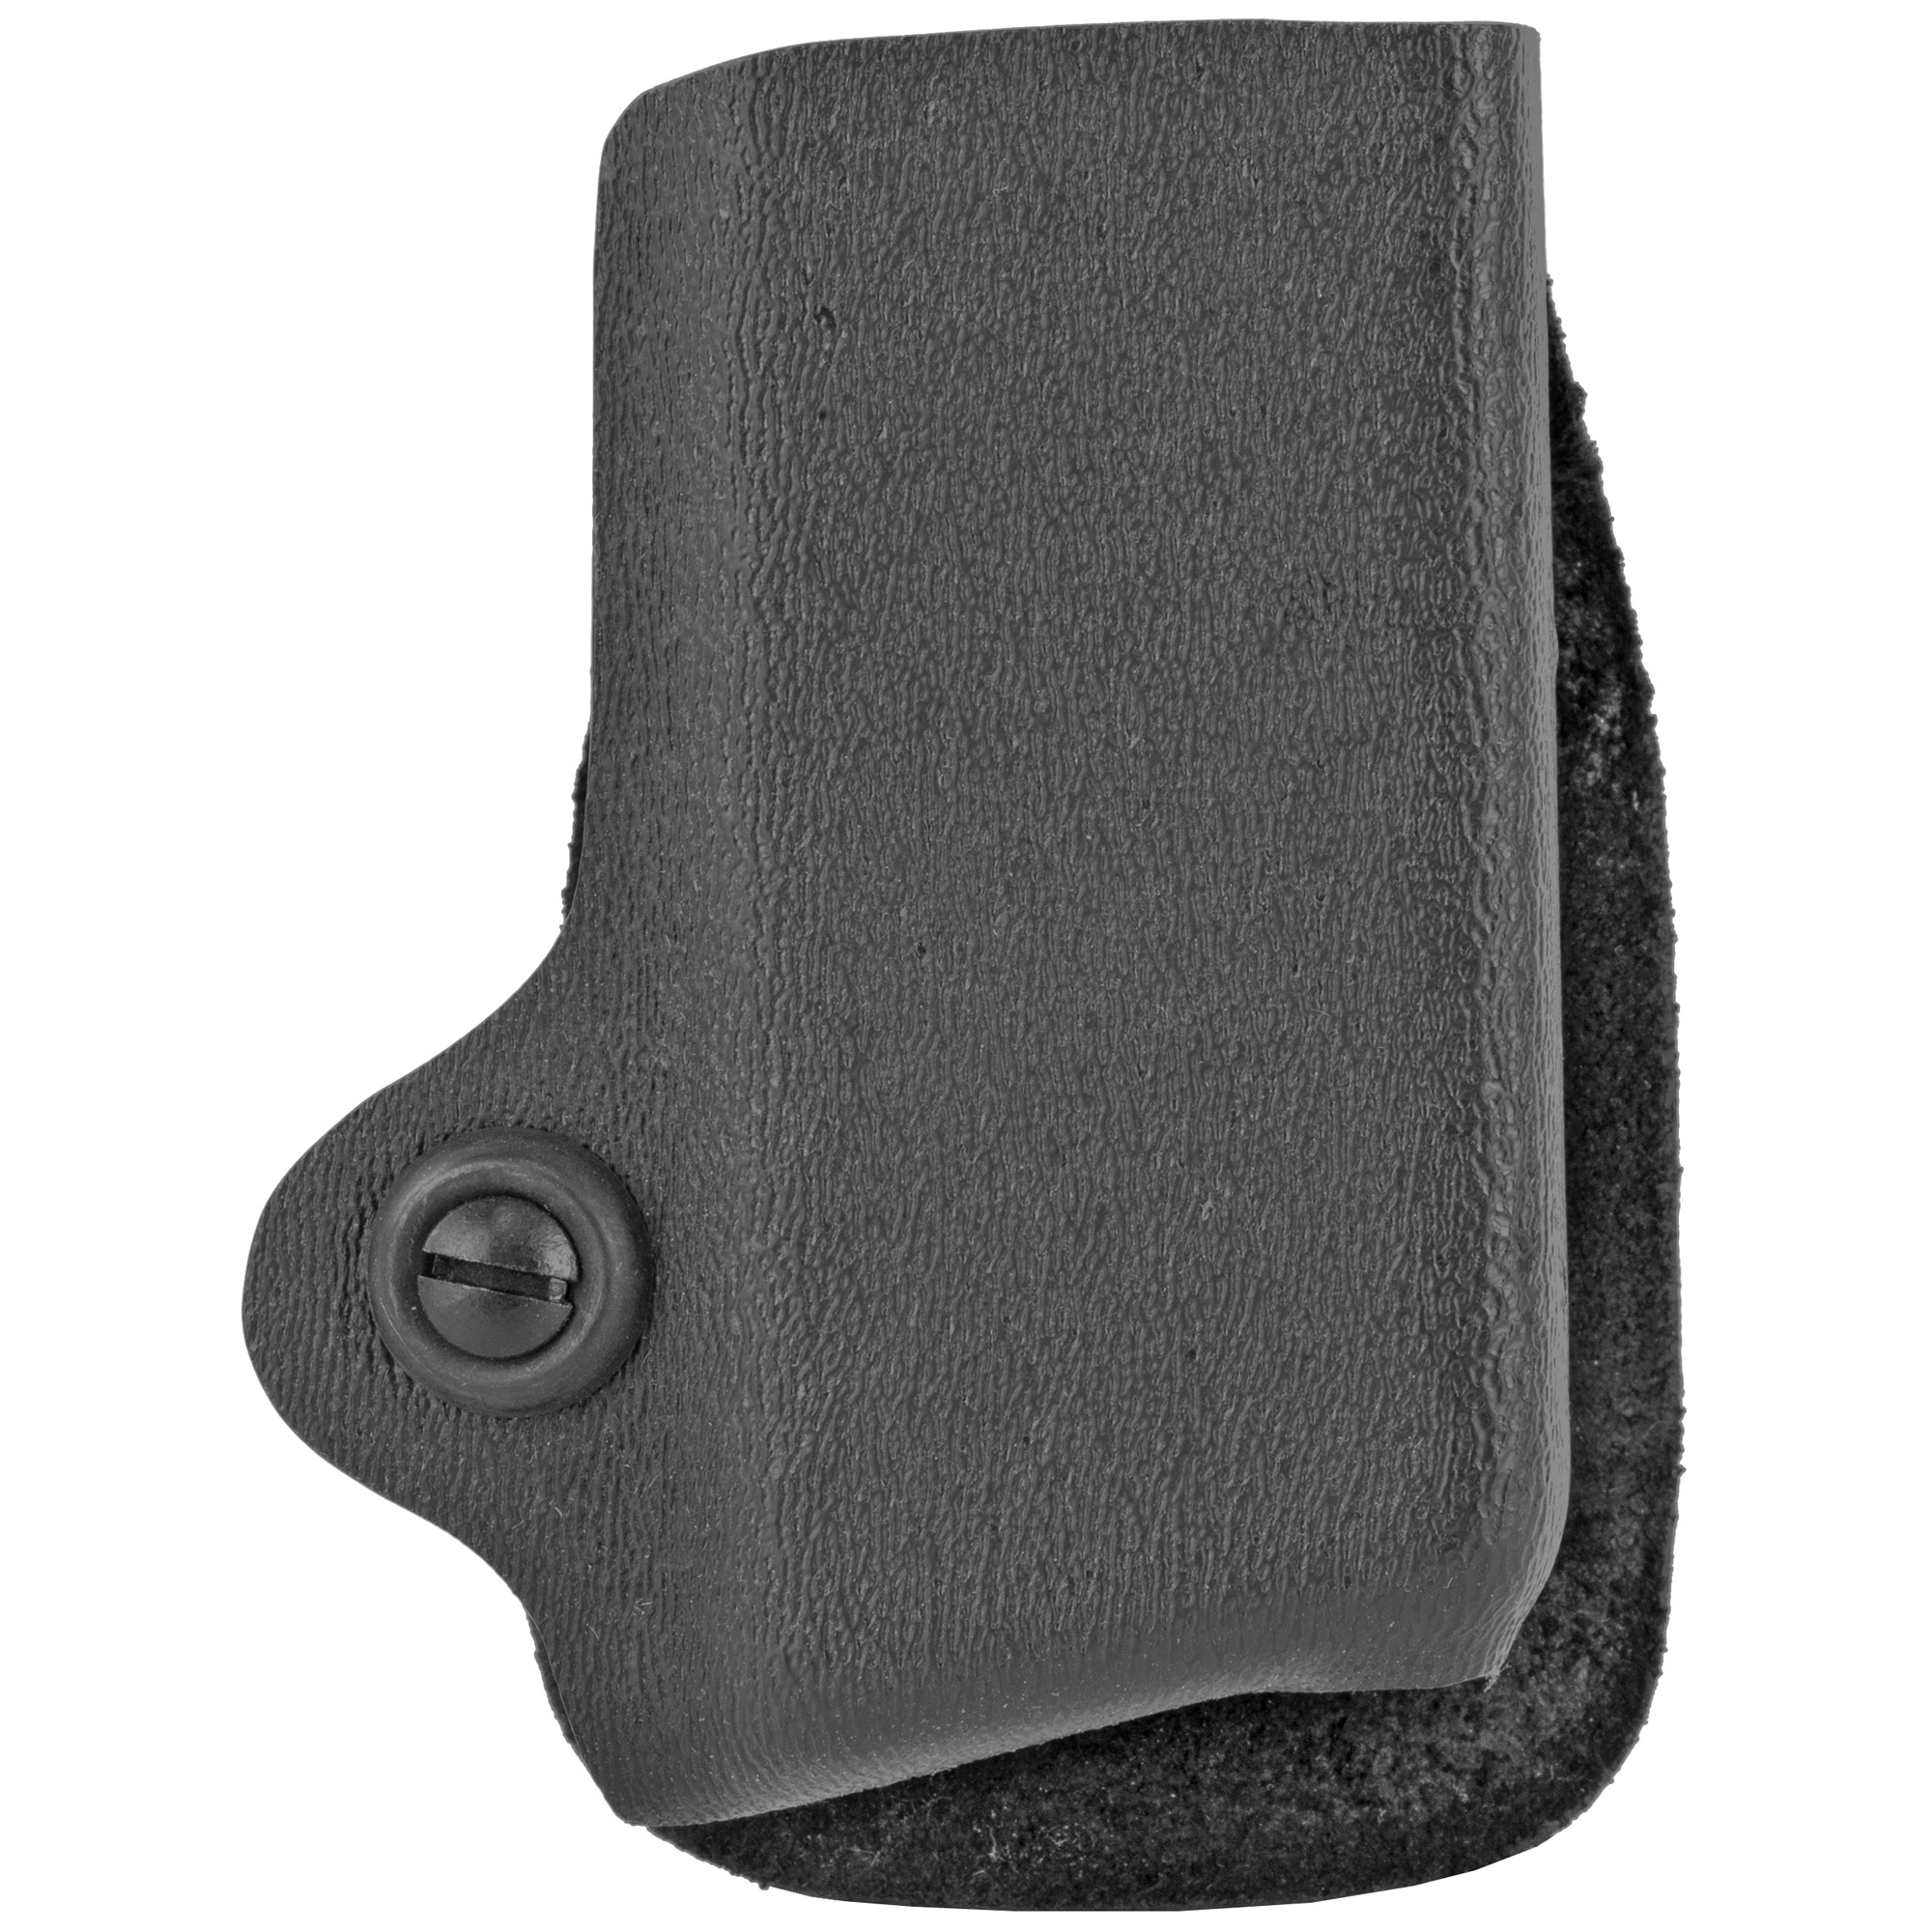 "The 074 Magazine Pouch features a paddle design for easy on/off convenience. Thermal molded SafariLaminate(TM) construction combined with the molded polymer paddle make this one of the best pouches for concealment use. It has an adjustable tensioning device that allows the user set the exact amount of friction required to remove the two magazines. It will fit belts up to 1.5"" (38mm) wide."